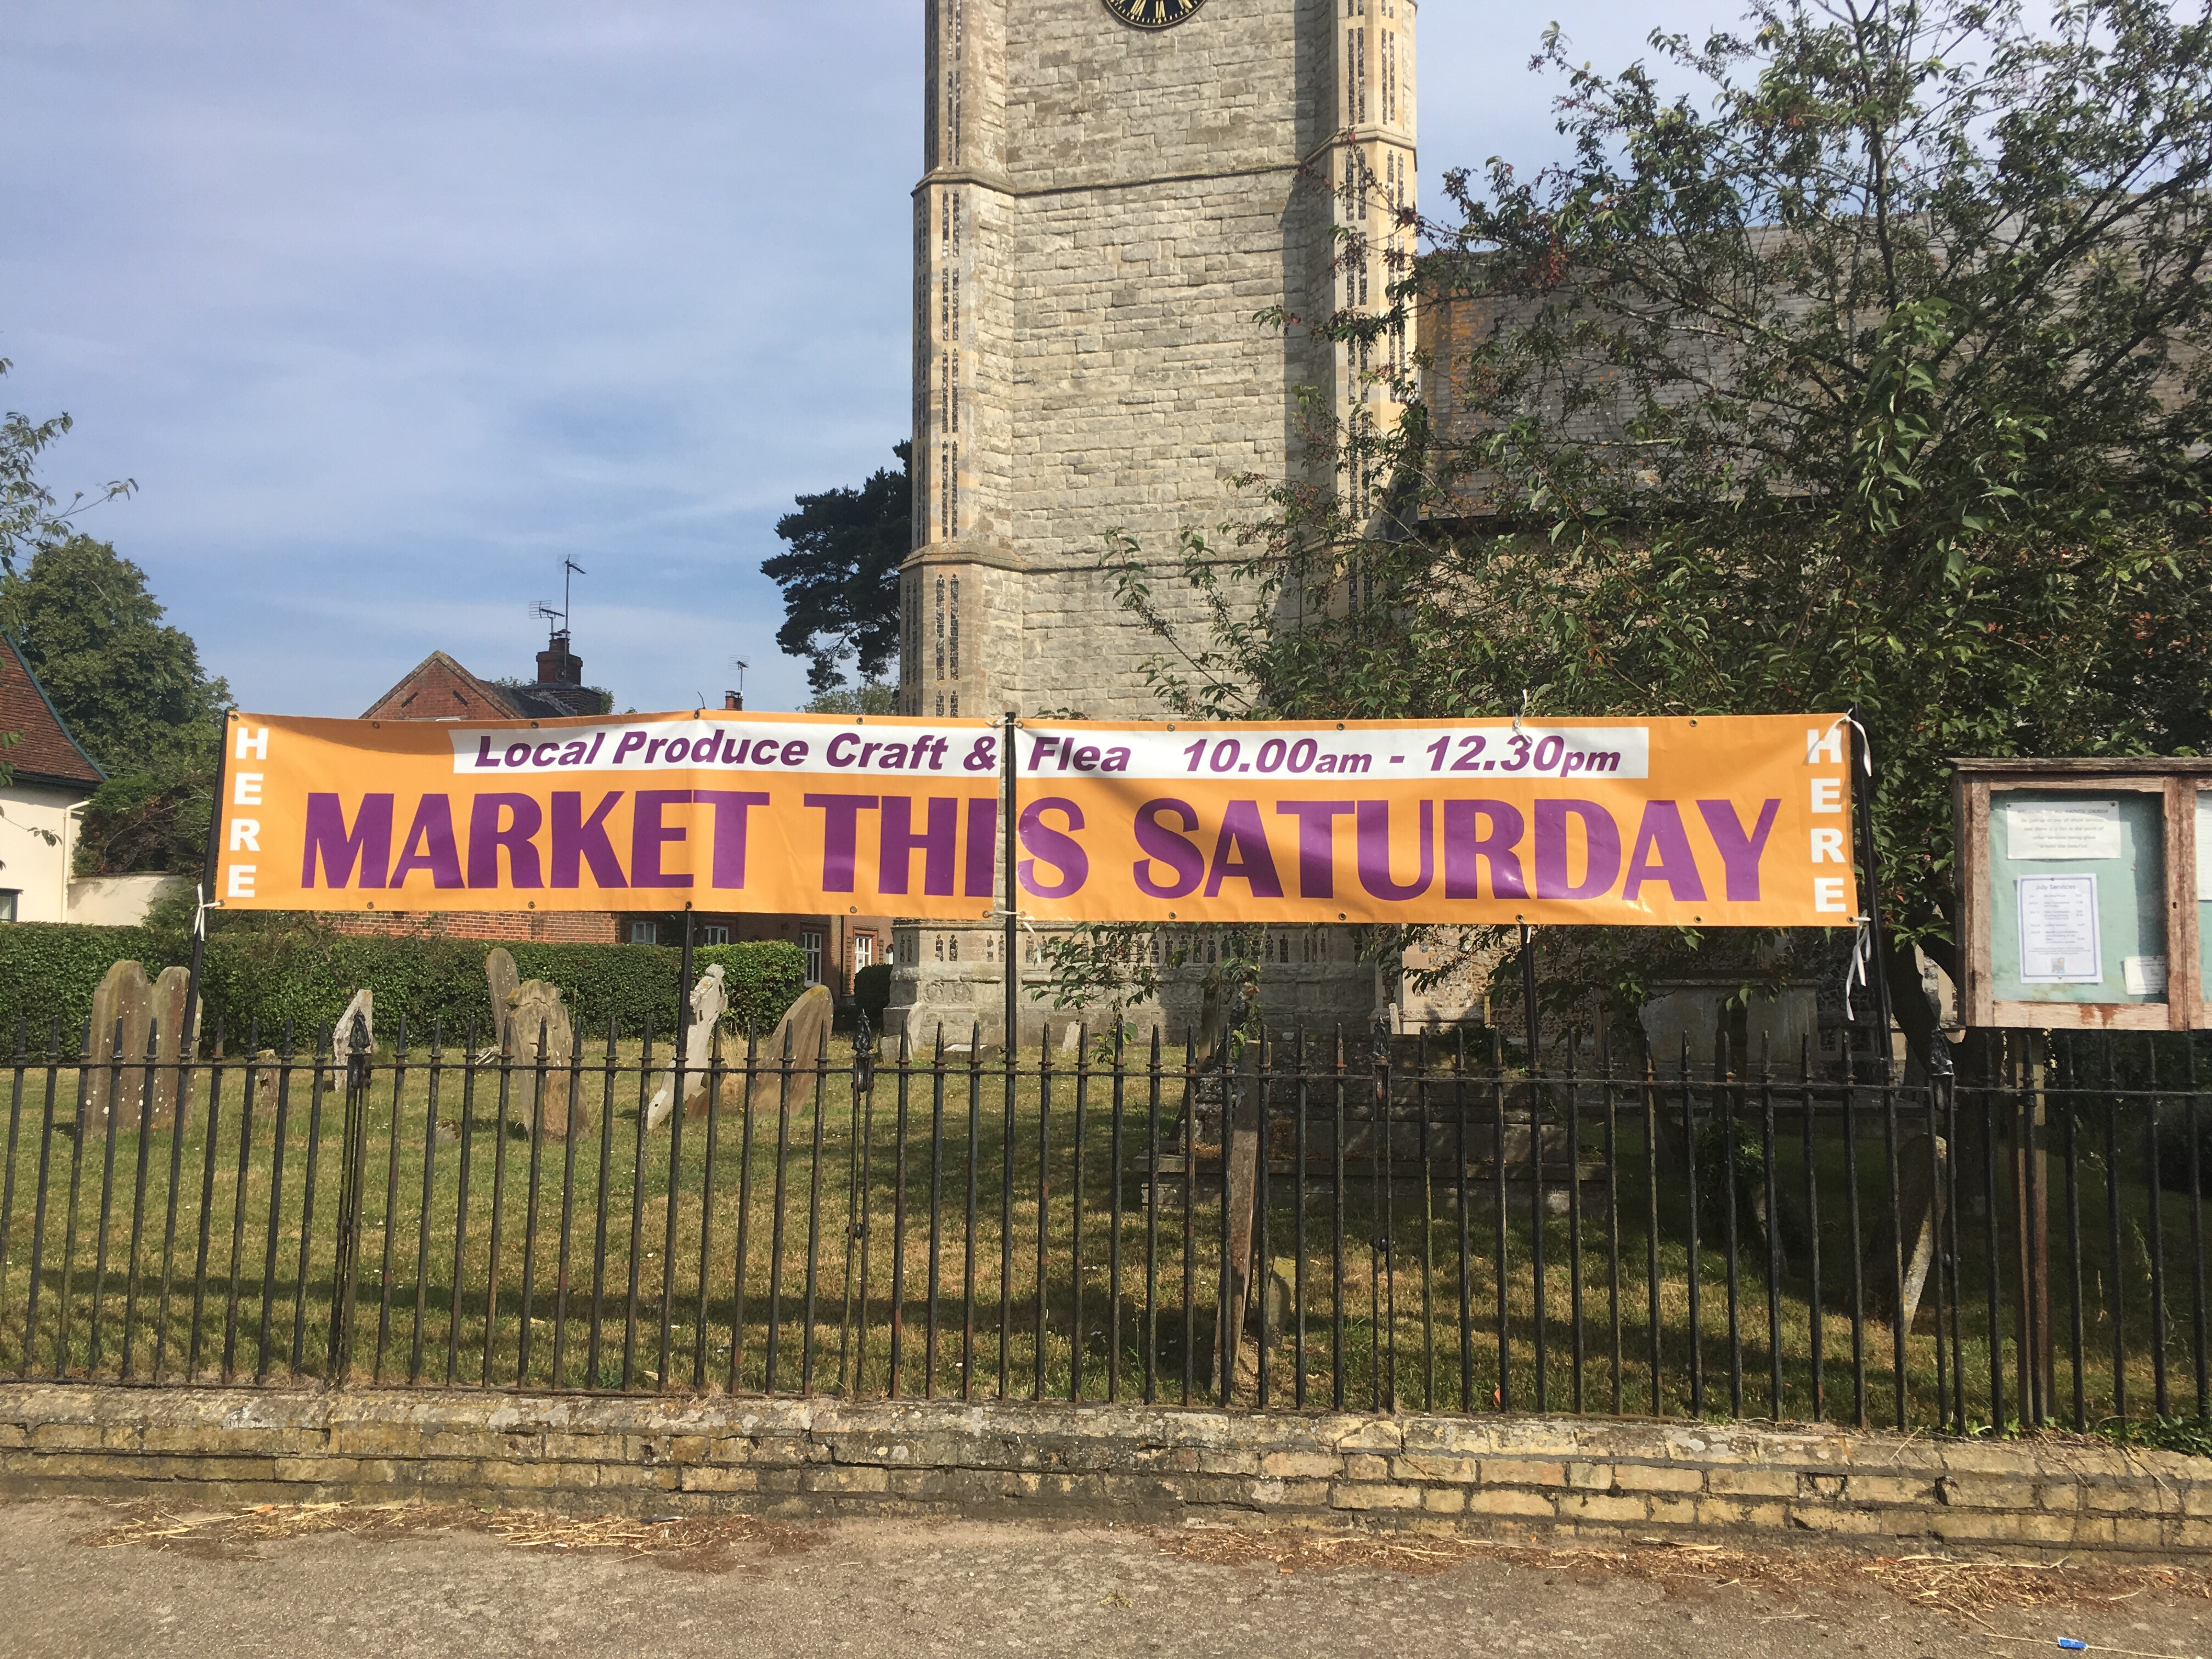 Laxfield market on today!